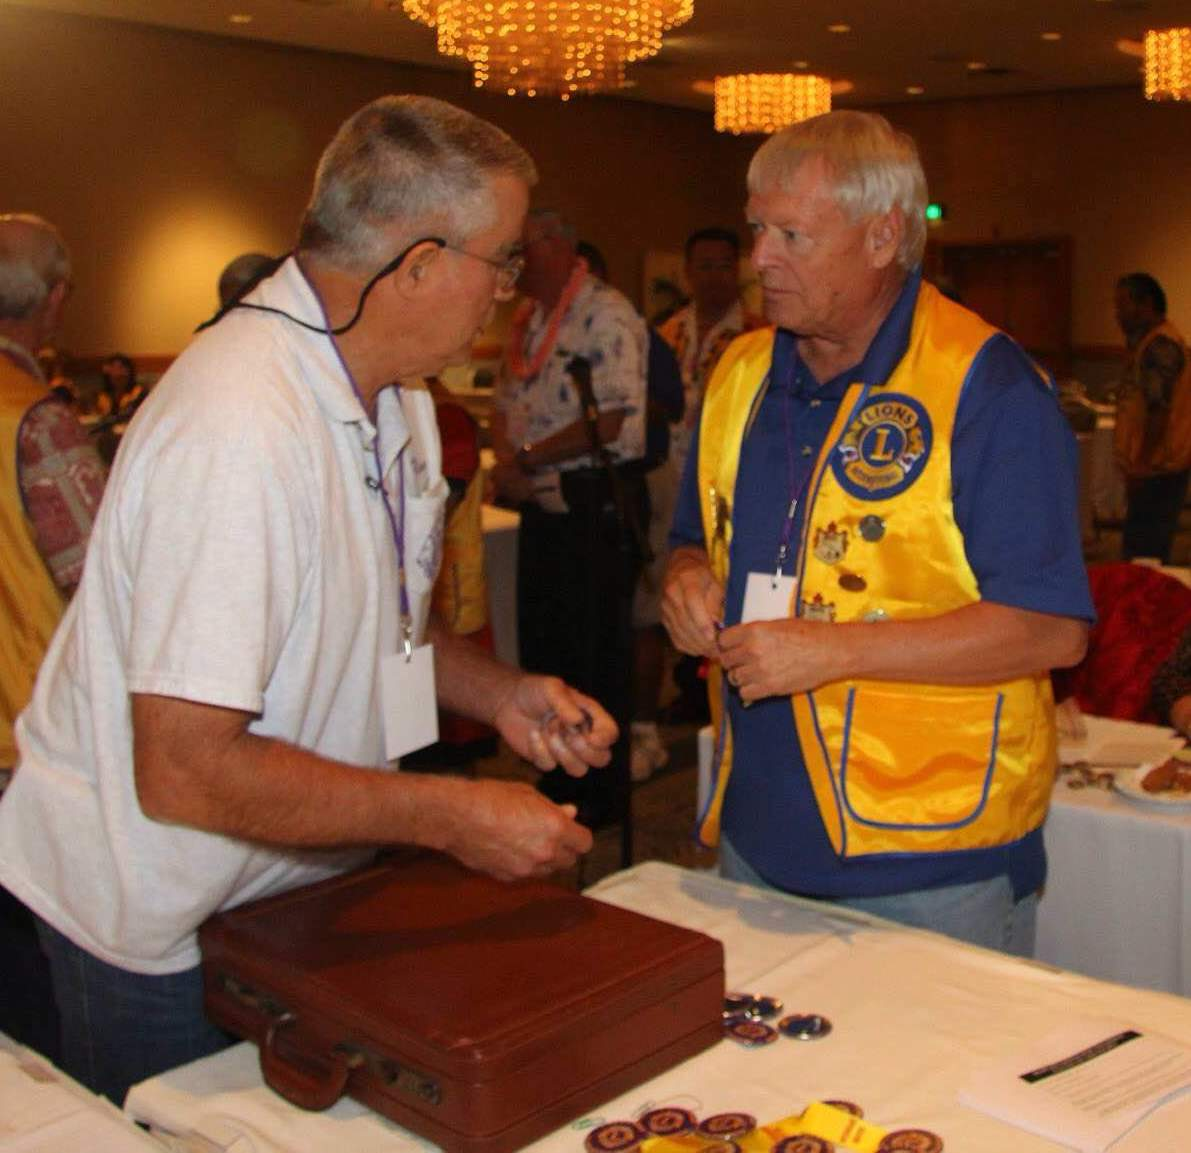 Prexy Jim receives a platinum ribbon for the club after EKLC's donation at the Parade of Checks. Several individual EKLC Lions including Prexy Jim and Secretary Shirl, Elaine and Steve Saiki, and Janice Bond also made donations to the Hawaii Lions Foundation